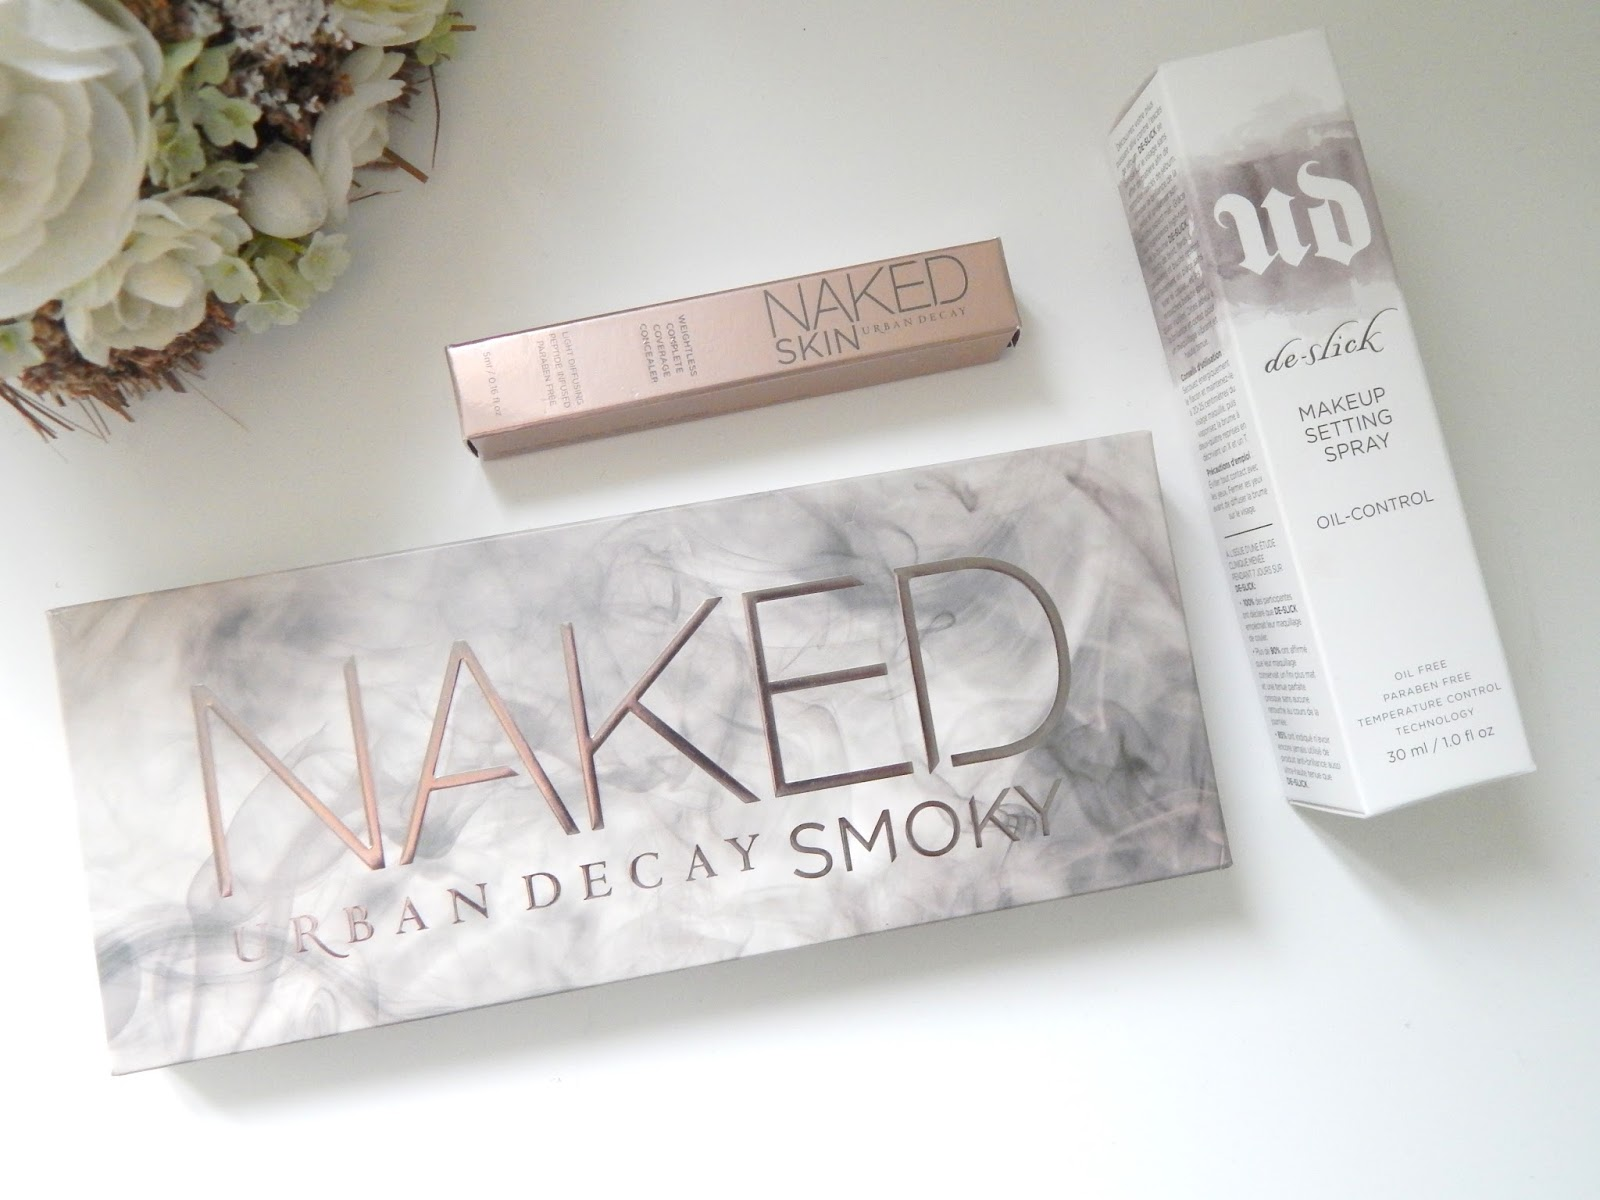 Urban Decay Naked Smoky Palette, Naked Skin Concealer and De-slick Setting Spray